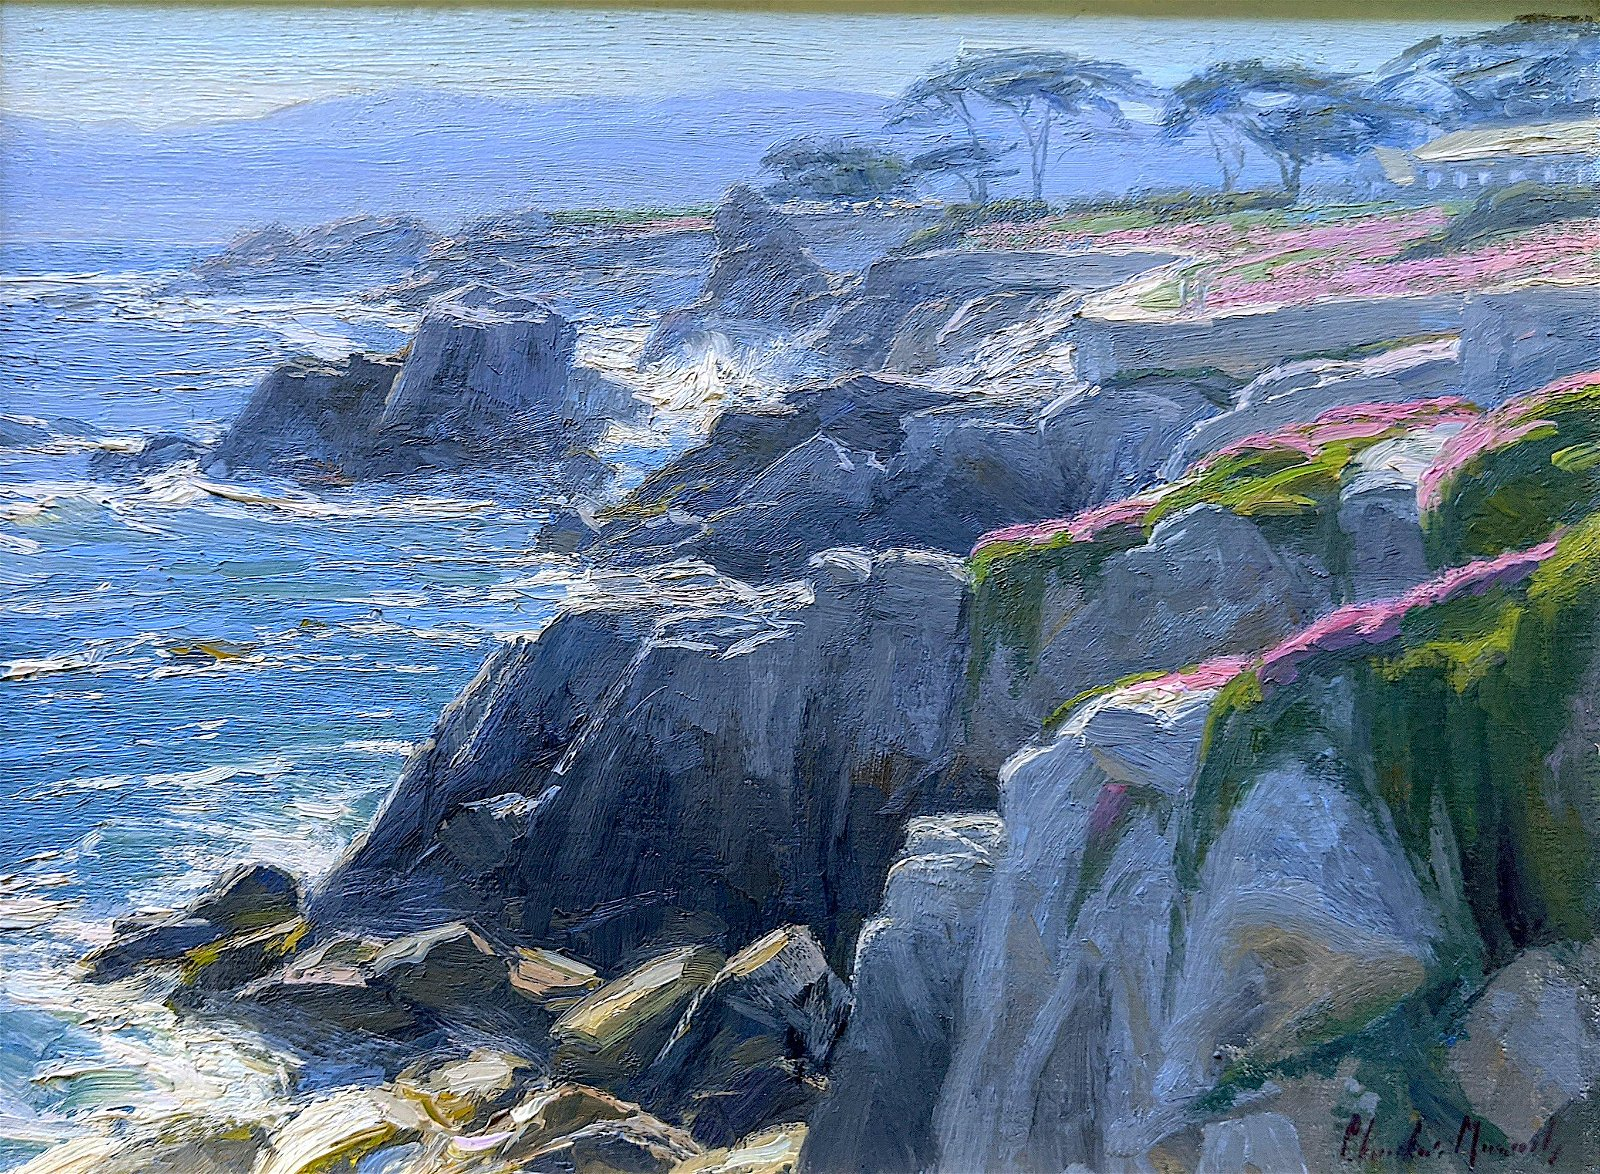 CHARLES MUENCH, American Pacific Grove, CA